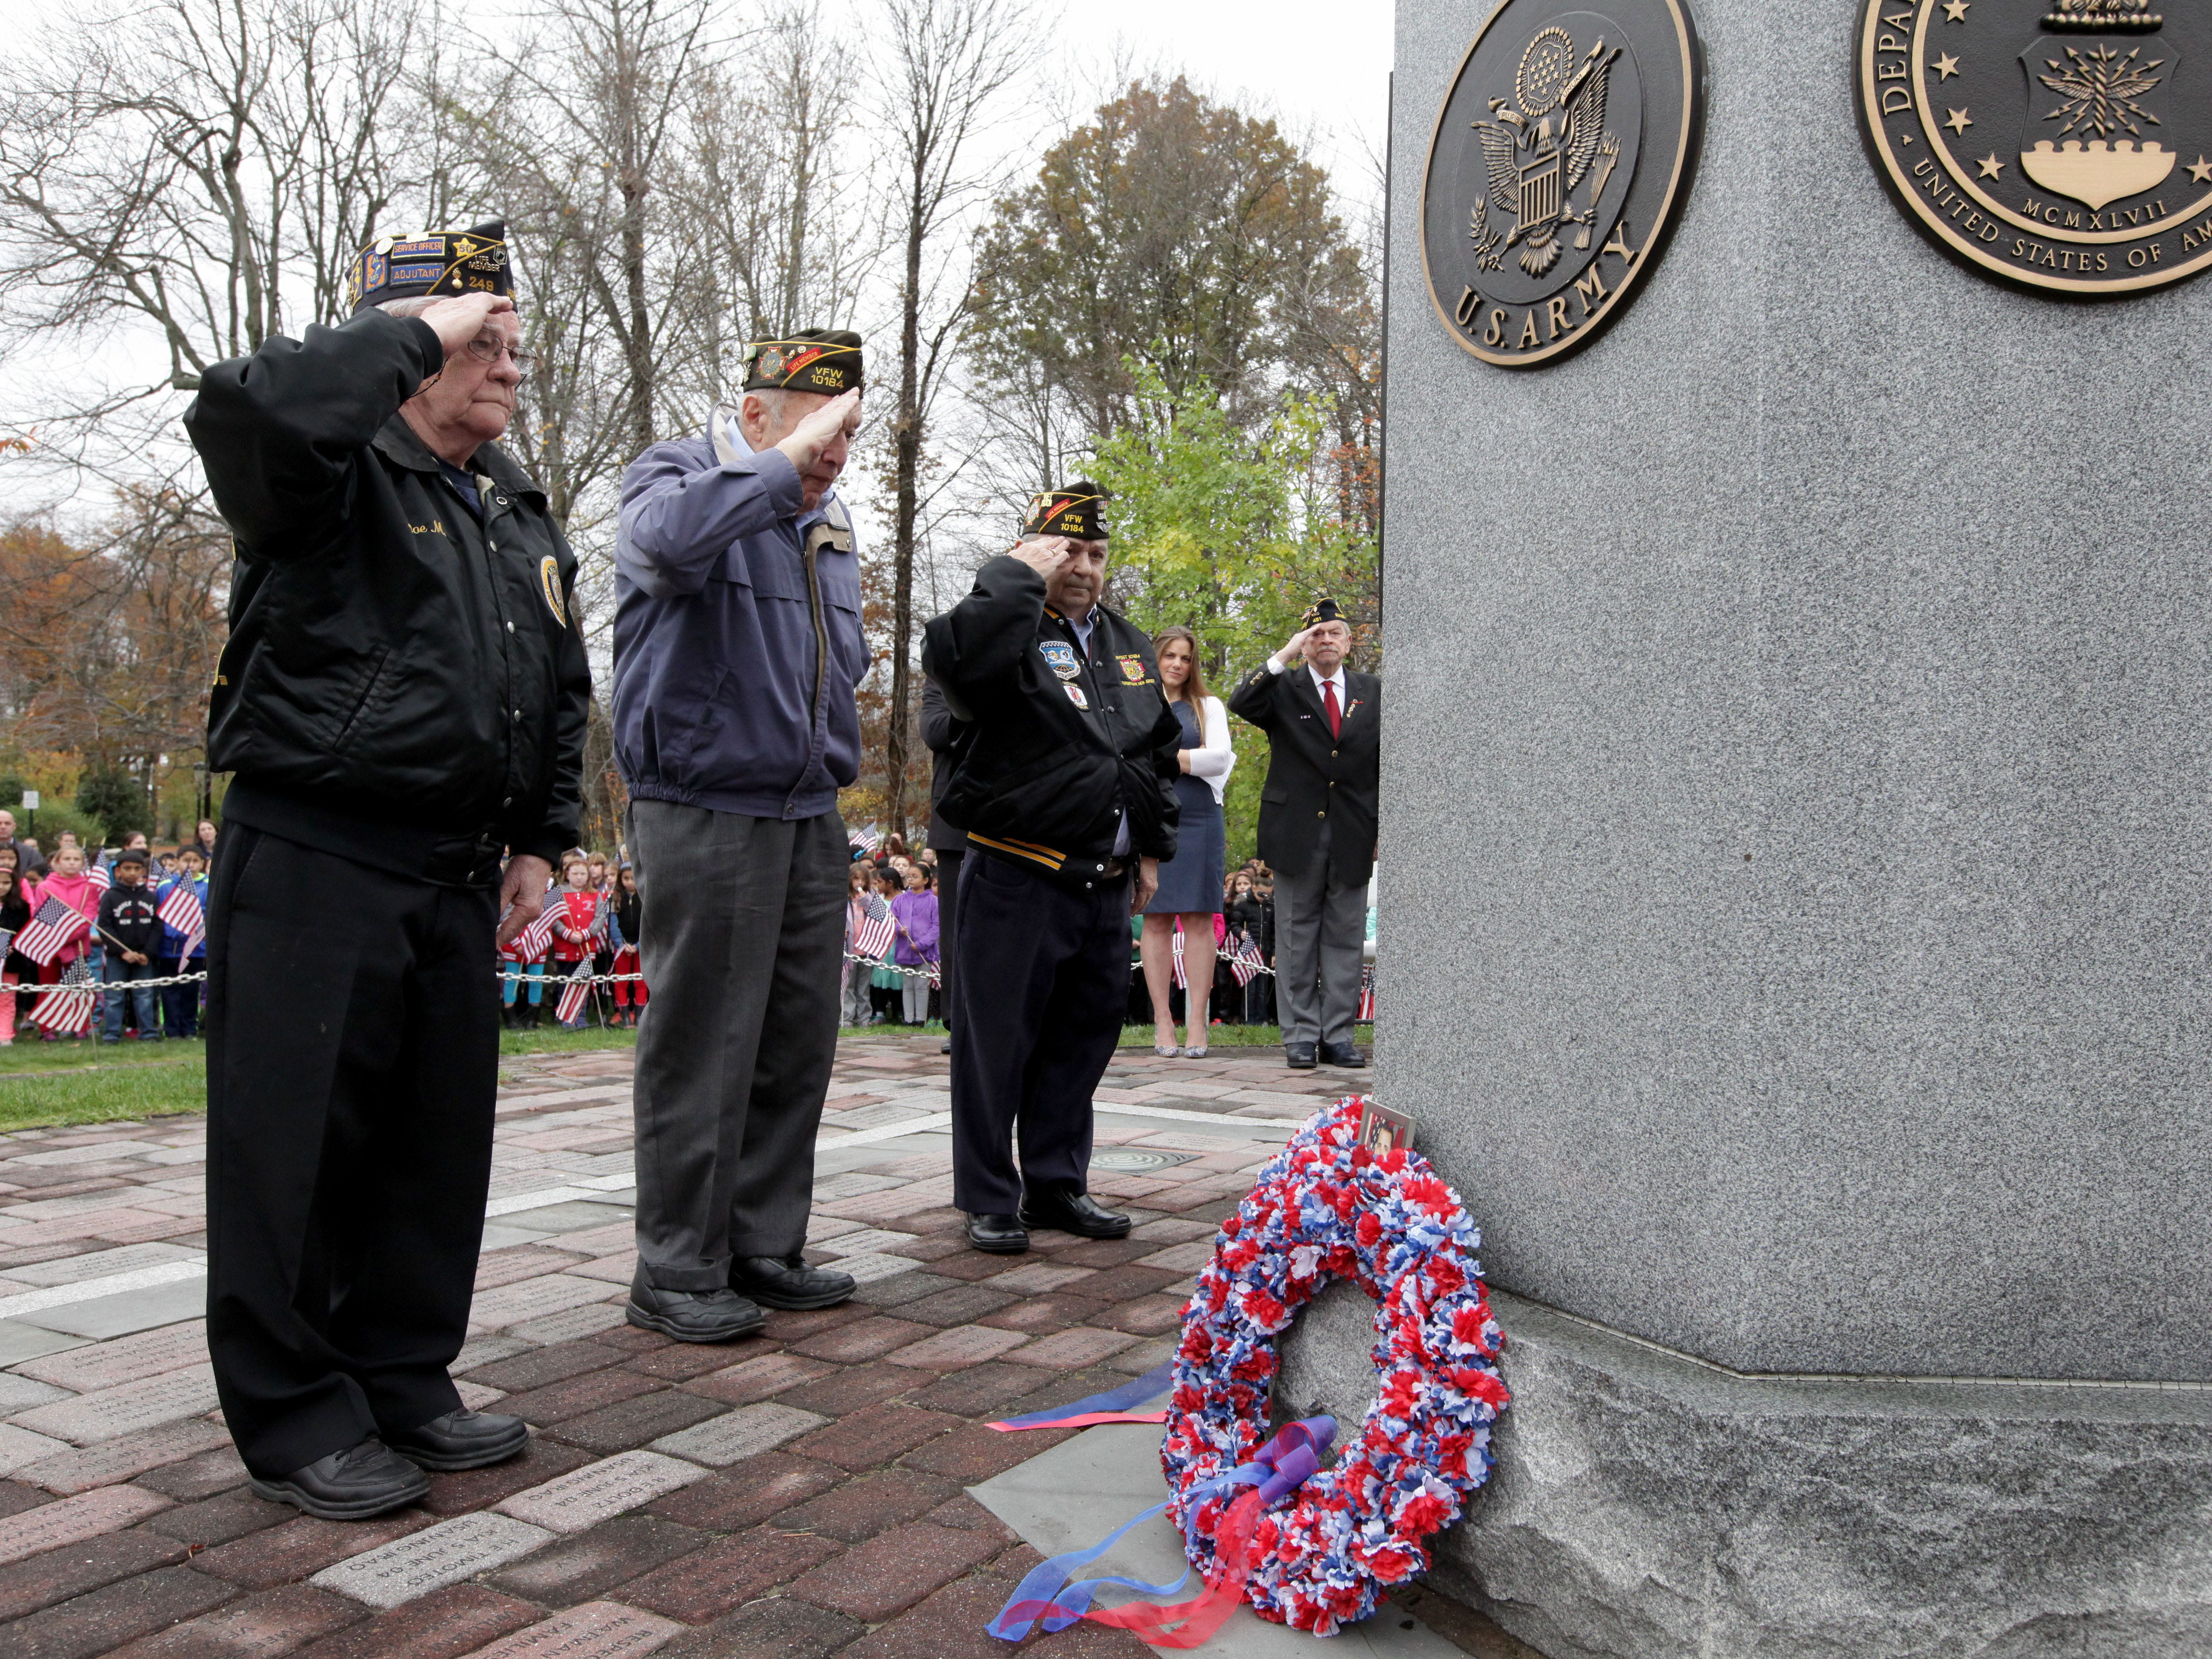 Veterans, (l-r) Joe Minsavage, American Legion Post 249, Harry L. Ettlinger, Monuments Men, and Gary Erdmann, VFW Post 10184, take part in the Laying of the Wreaths during Parsippany's Veterans Day ceremony held at Veterans Memorial Park , November 11, 2015. Mary Iuvone/For The Daily Record